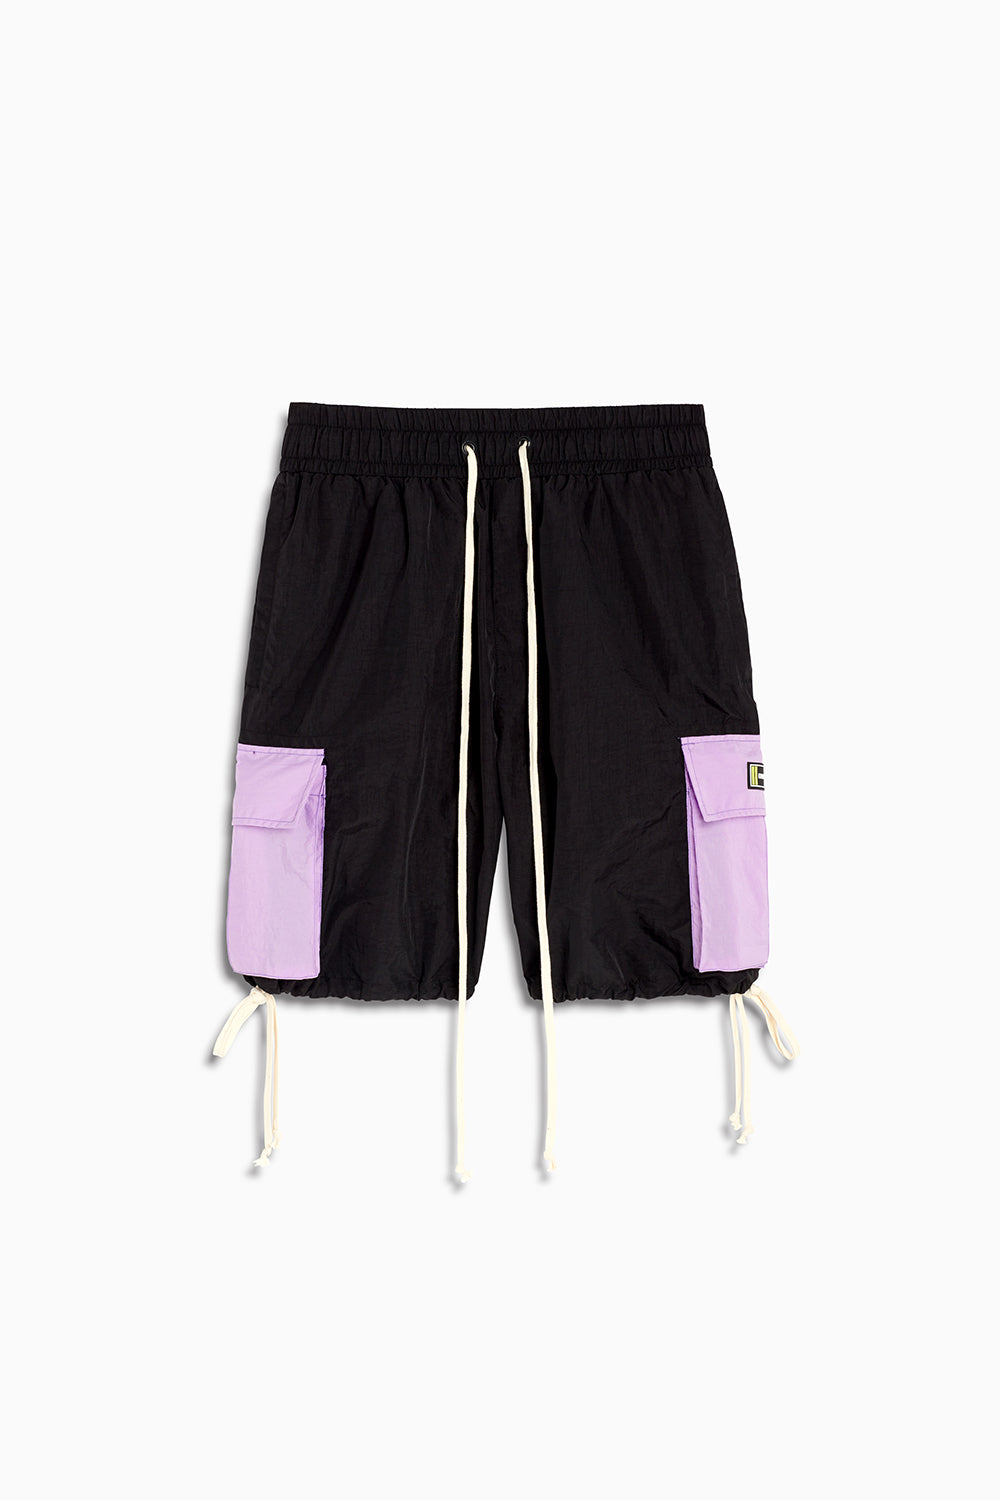 M93 cargo short / black + purple haze